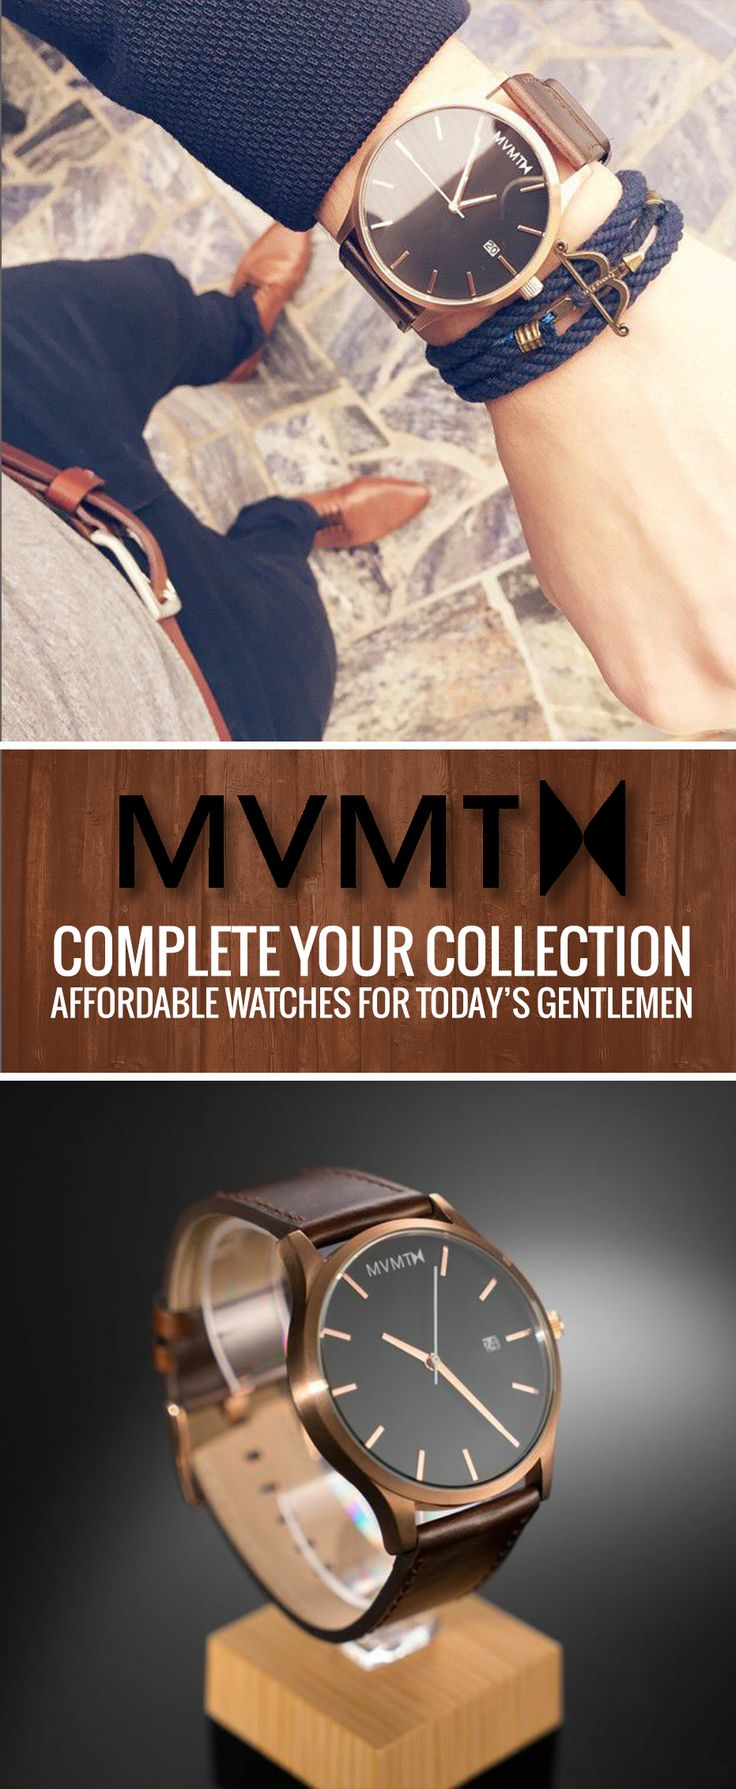 Whether he's looking for a casual watch to wear on the weekends or one that will stand out in the boardroom MVMT Watches has the smart, sophisticated, elegant style to fit any occasion. All watches around $100 with free shipping worldwide!